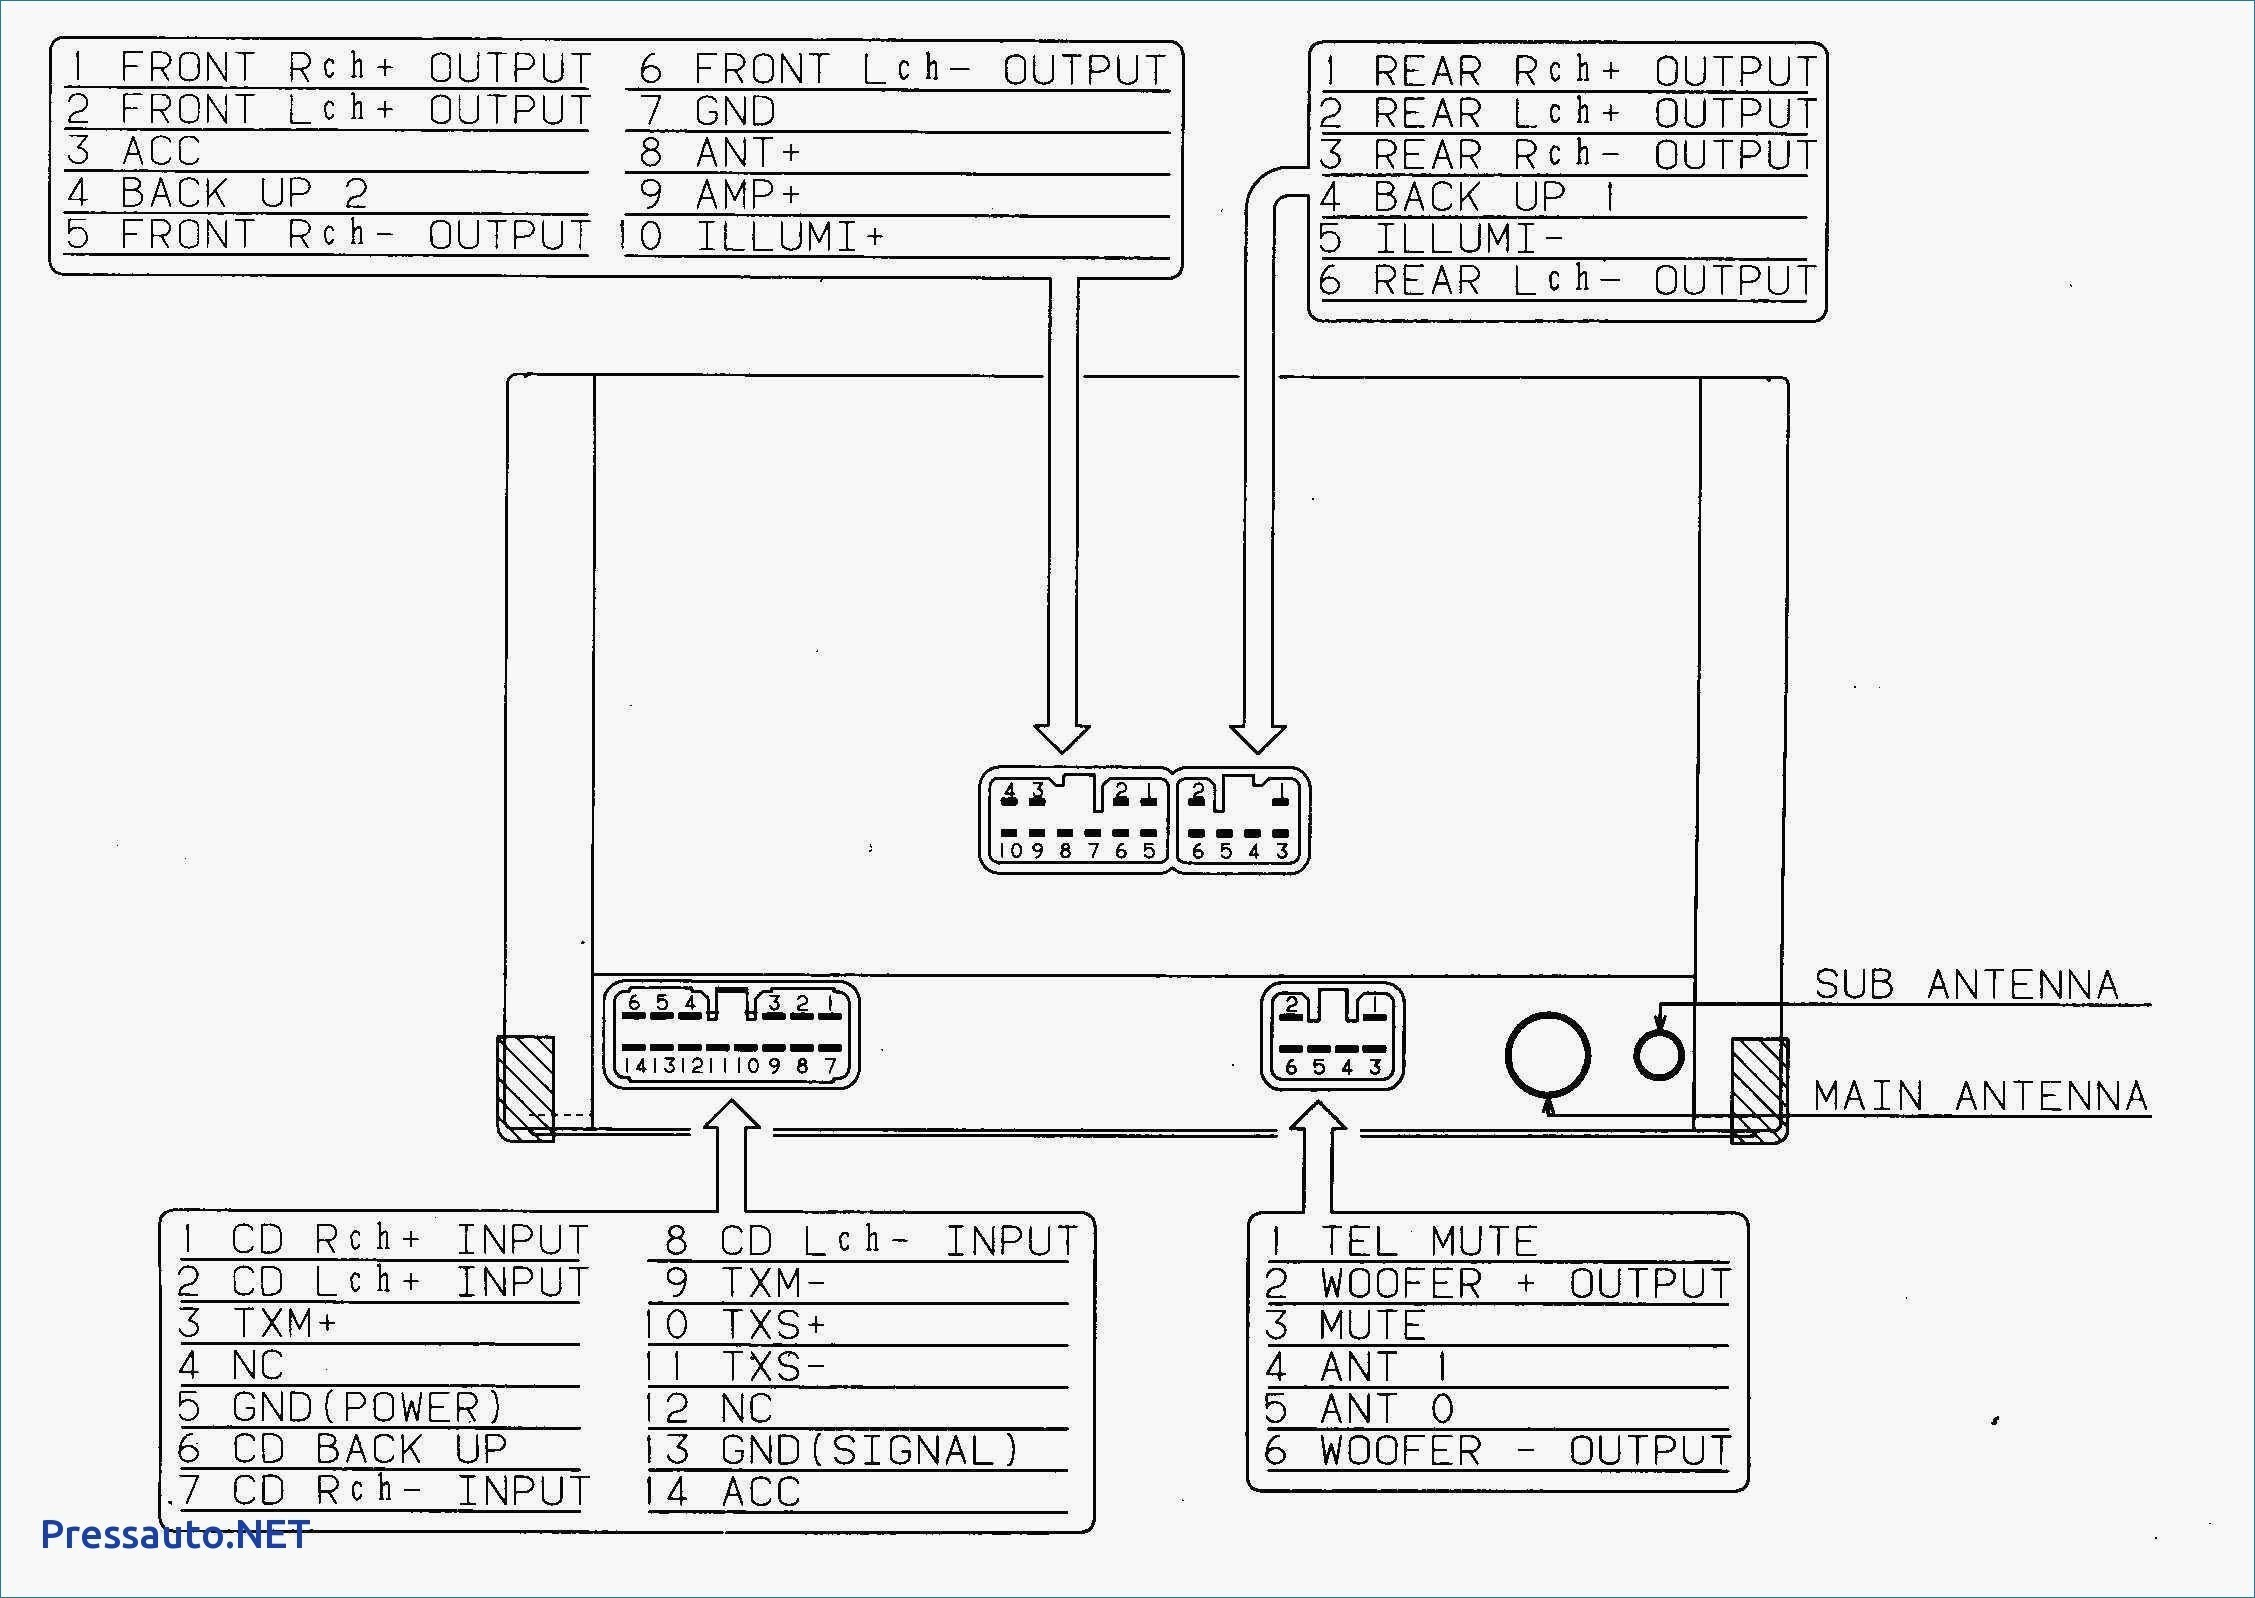 clarion 16 pin car radio wiring diagram custom wiring diagram u2022 rh littlewaves co